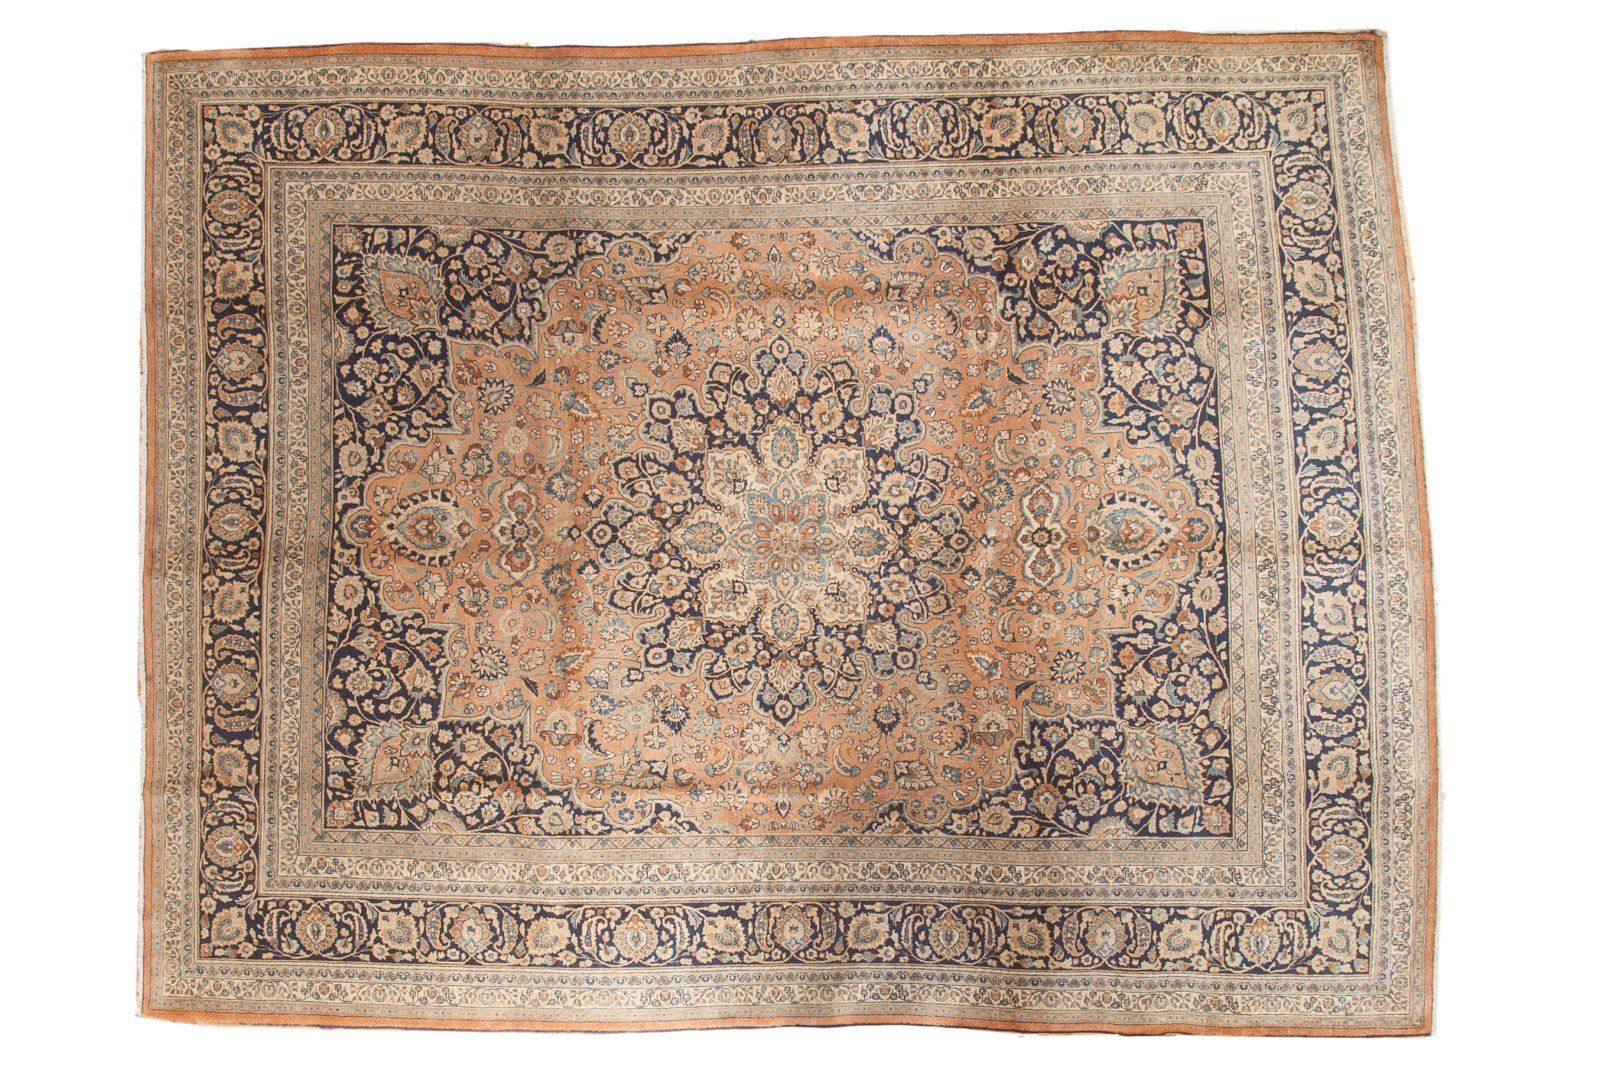 10x12 5 Vintage Meshed Carpet Old New House Carpet Vintage